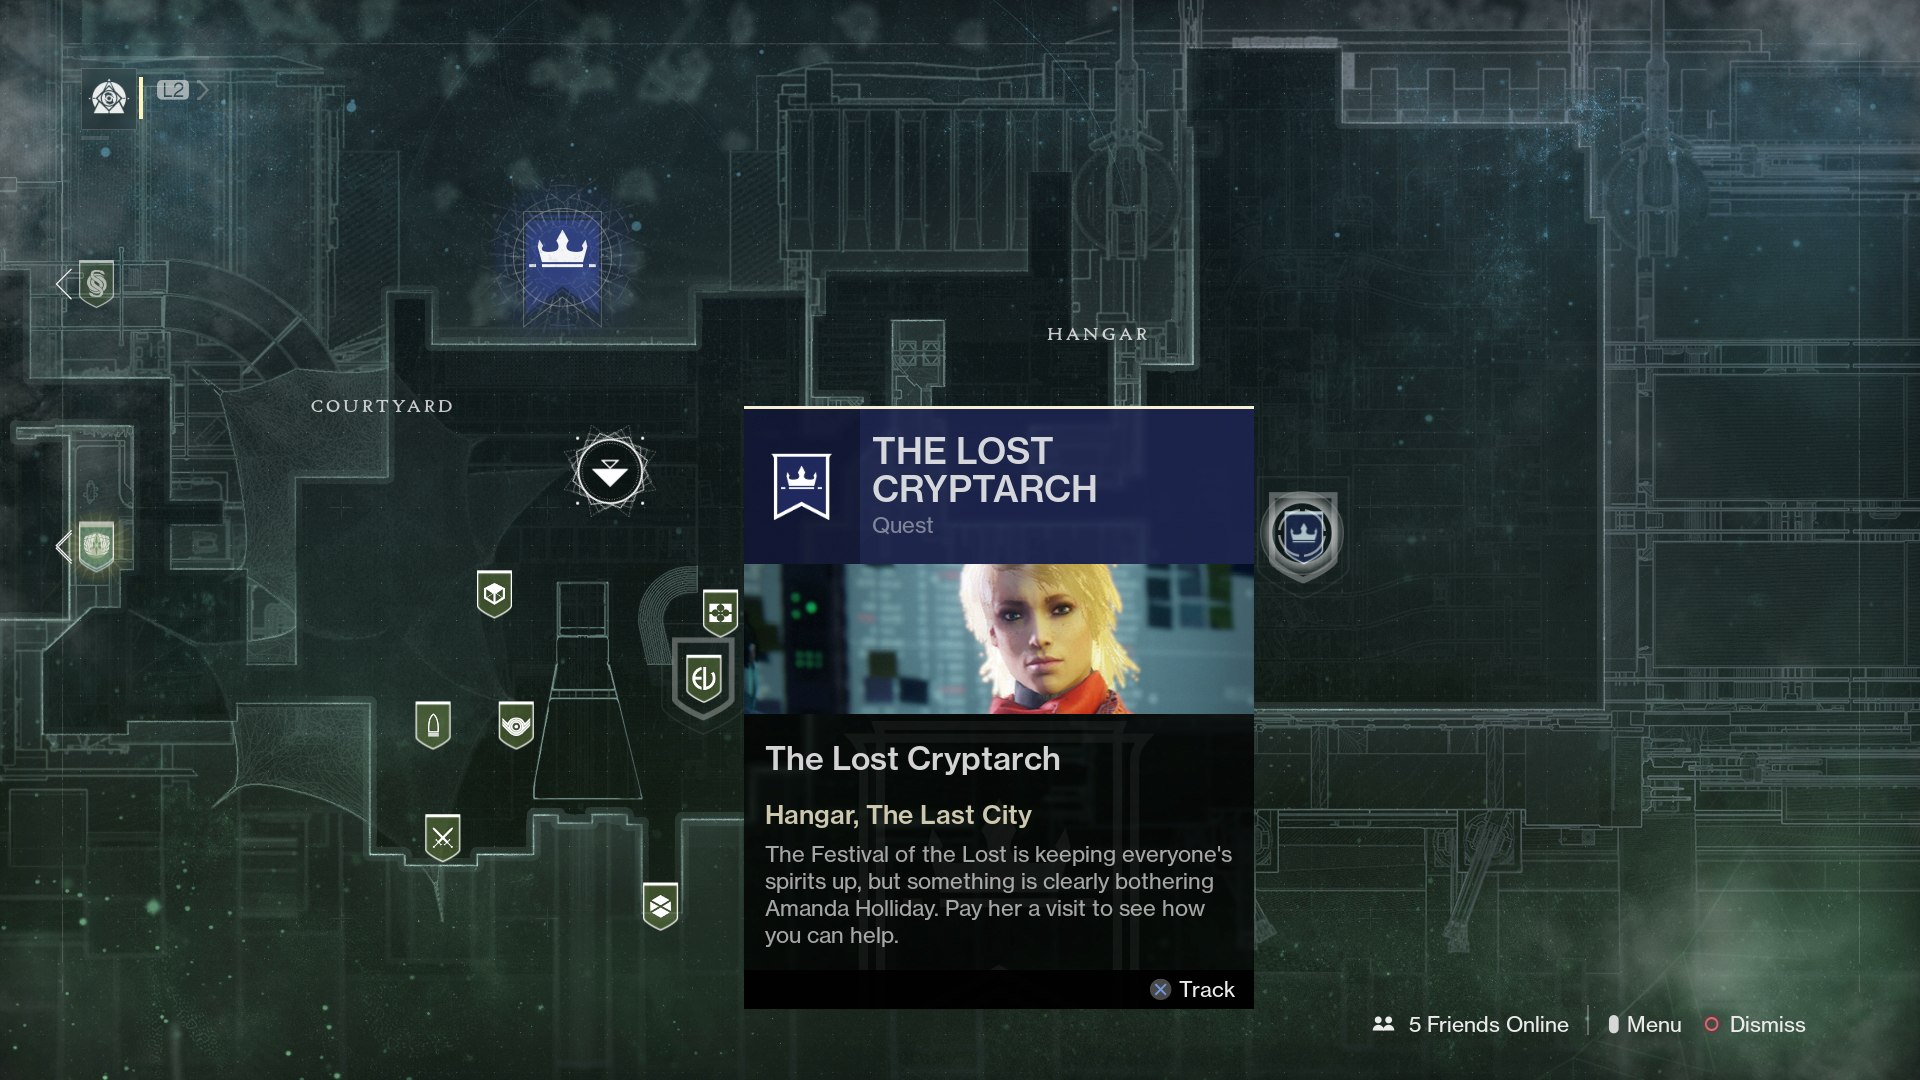 Destiny 2 Lost Cryptarch Guide - How to Get the Thunderlord